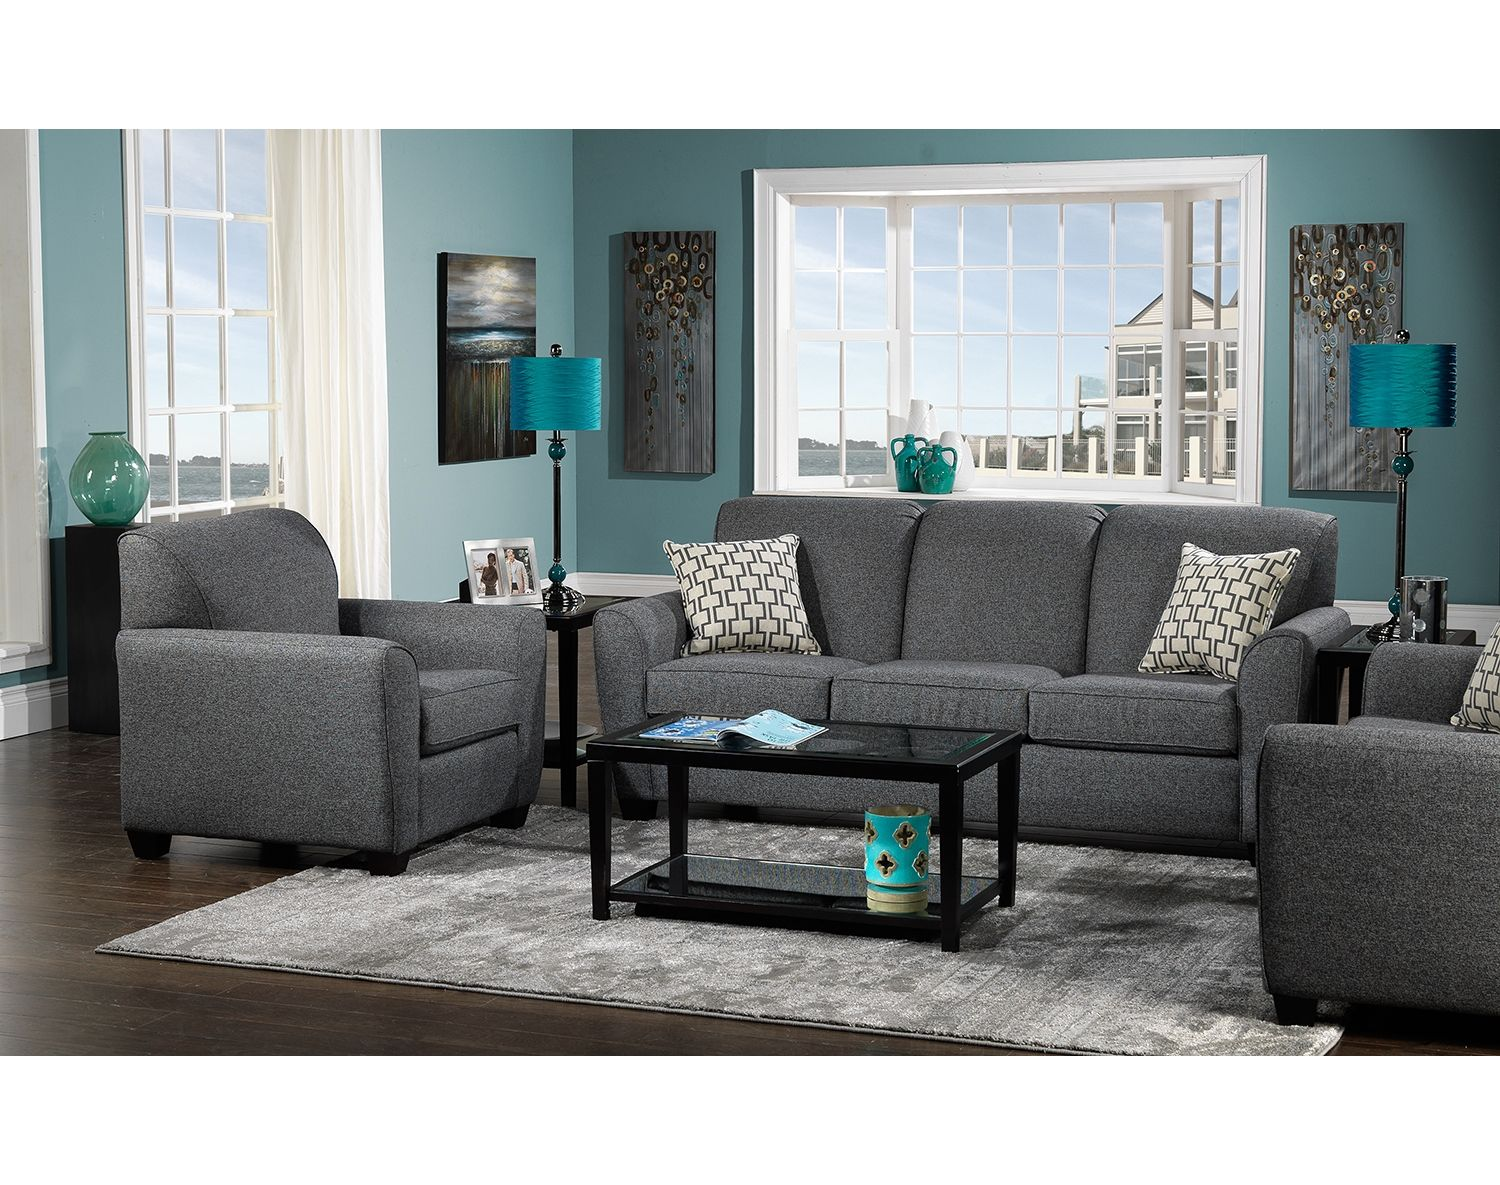 Smart Direction Give Your Decor A Strong New Perspective With The Ashby Grey Sofa Suited Up In Deep Living Room Turquoise Teal Living Rooms Living Room Grey